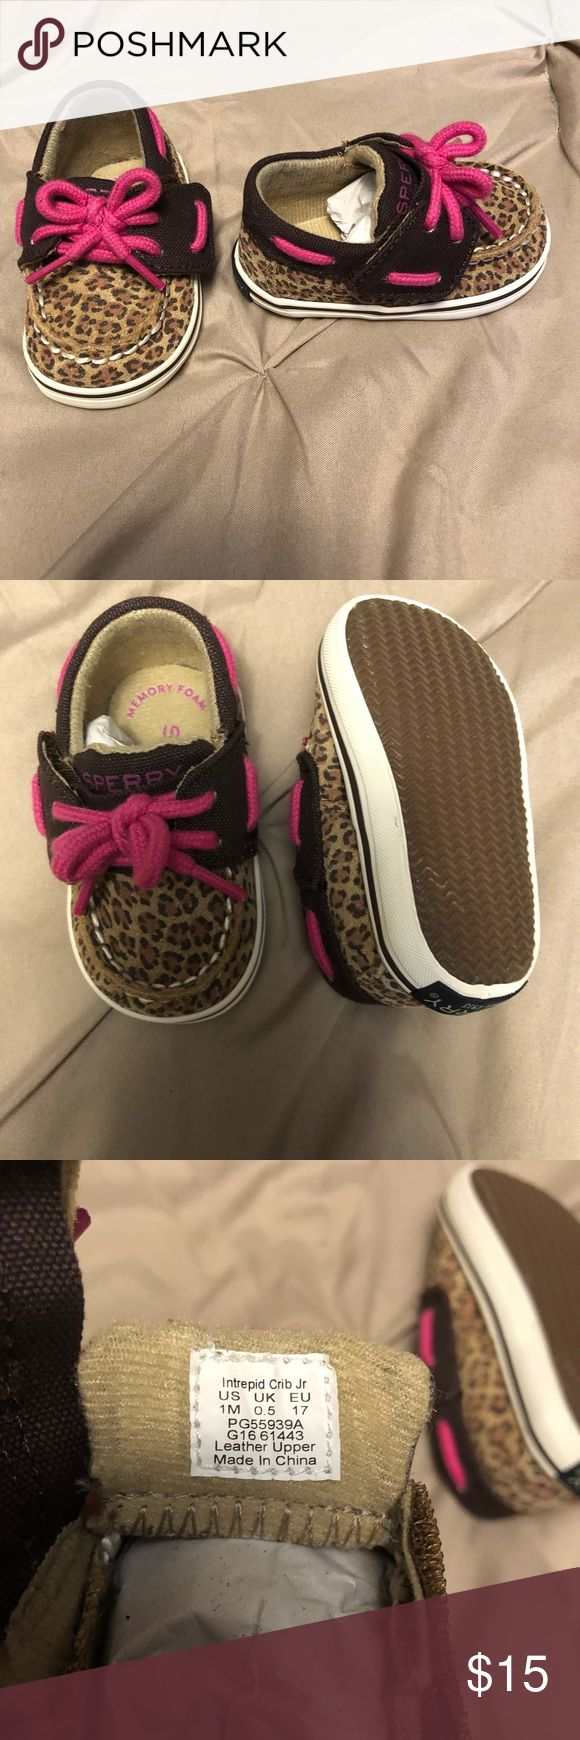 baby sperrys new without box baby sperrys Sperry Shoes Baby & Walker